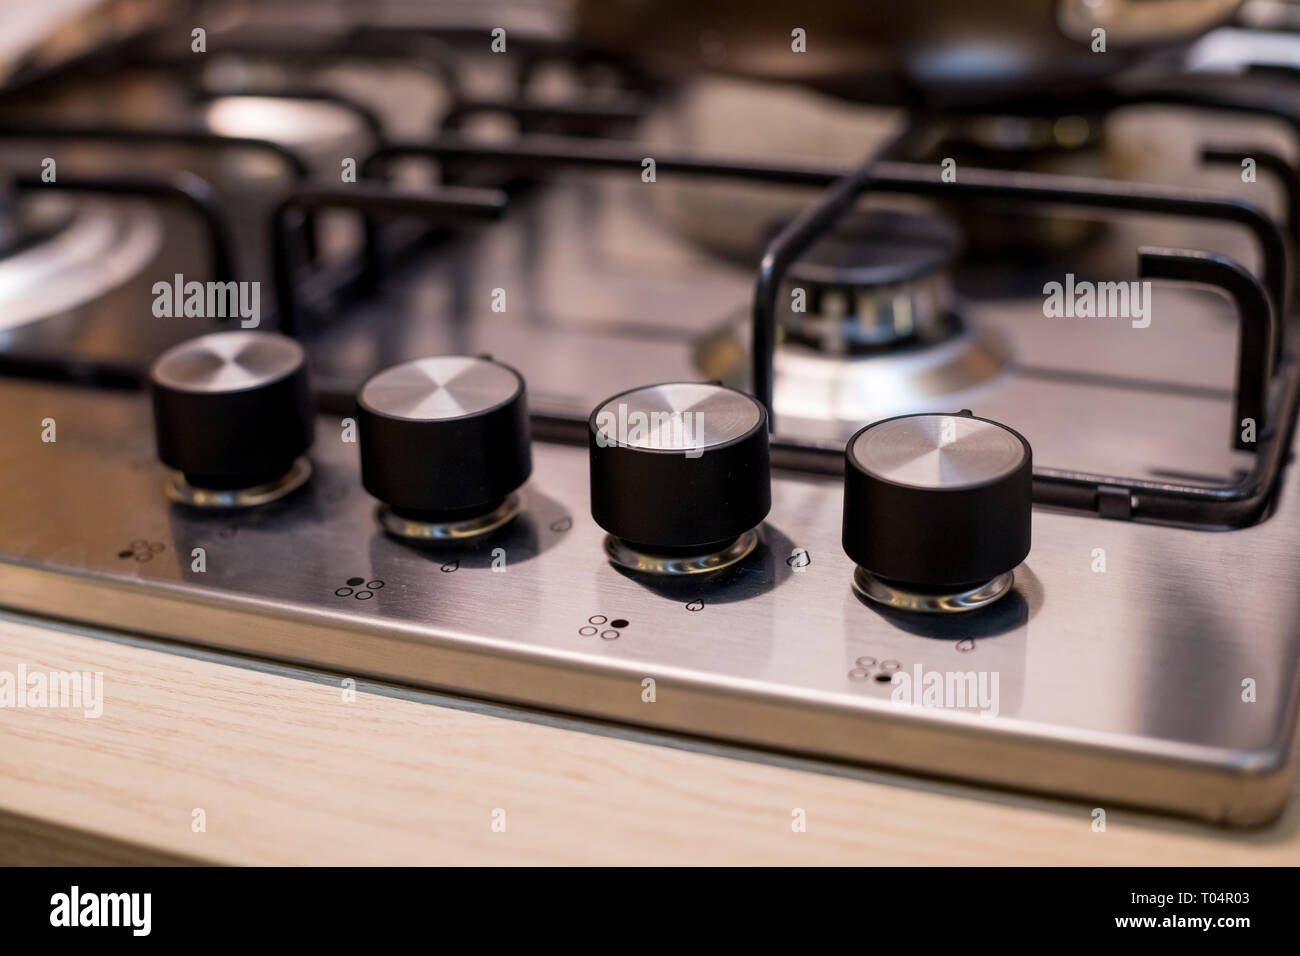 Metal gas stove on modern kitchen. the concept of forced savings on utilities Gas stove.knob heat switch ,elegant metal ,steel black and white.gas - Stock Image